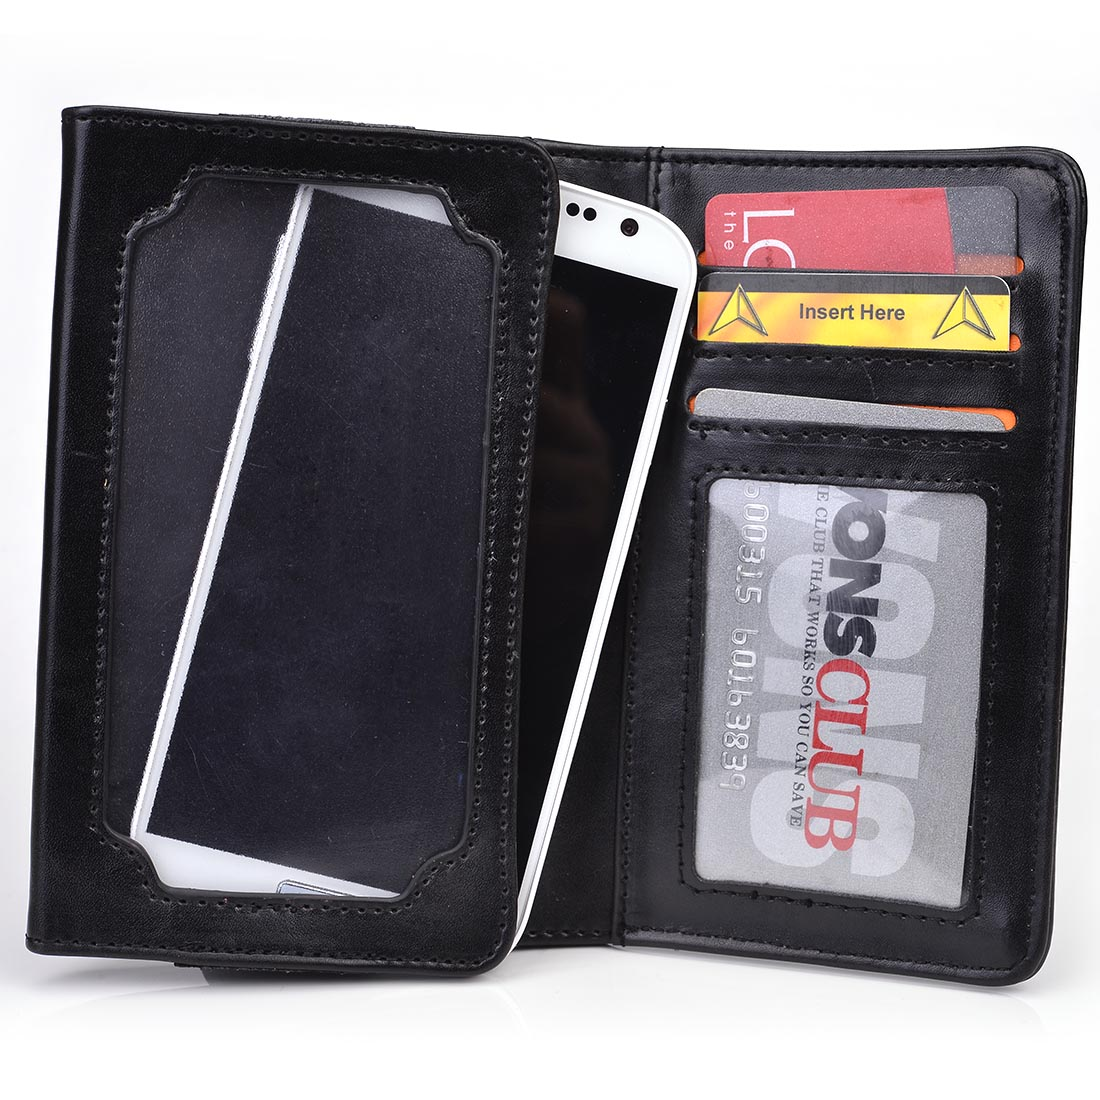 Kroo's Men's Leather BiFold Wallet and 5-inch Smartphone Case